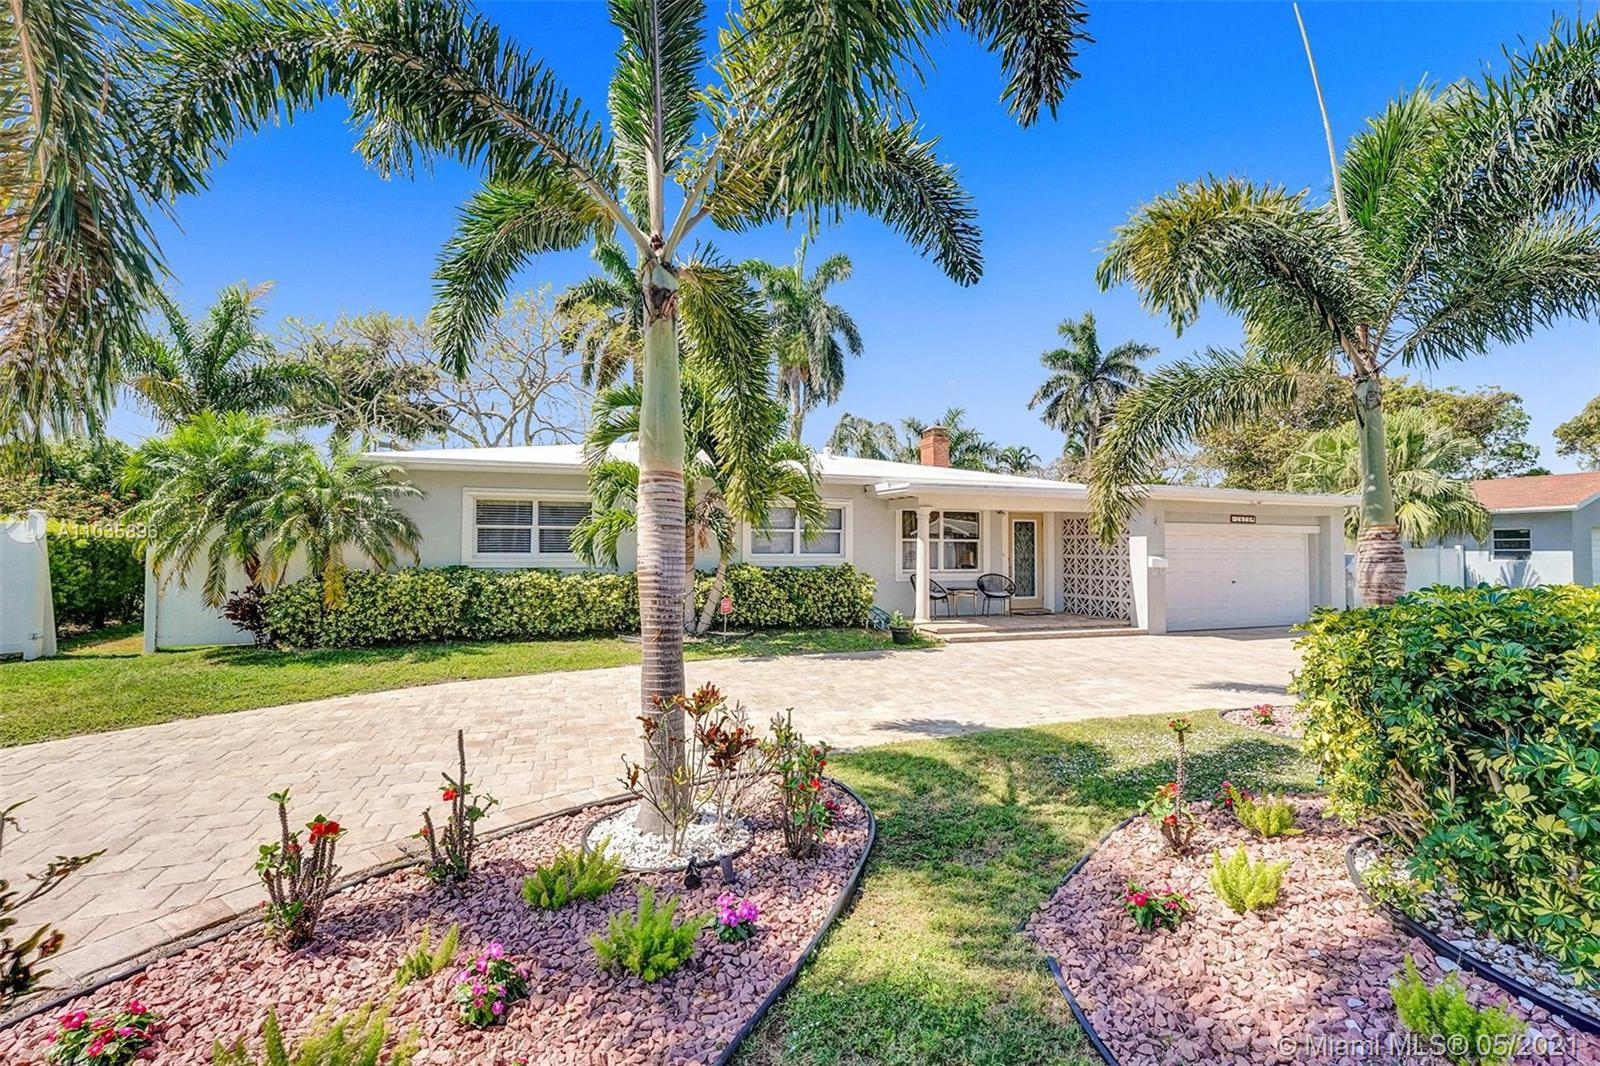 DESIRABLE EAST OF FEDERAL NEAR SHOPS, RESTURANTS AND MUCH MORE, ONLY 1.5 MILES TO THE BEACH. THIS UPGRADED HOME HAS A BEAUTIFUL PAVER CIRCULAR DRIVE THAT WILL PARK UP TO FIVE CARS PLUS A HUGE TWO CAR GARAGE. FRONT DOOR IS IMPACT, WINDOWS ARE SHUTTER READY AND ALL ARE STORED IN GARAGE AND TILE THROUGHOUT. A TWO SIDED FIREPLACE FROM DINING TO FAMILY ROOM. INCREDIBLE BACK YARD, LOT NEARLY 15000 SQ FT. SELLER CLAIMS LEGALLY ADDED FAMILY ROOM INCREASED HOME'S LIVING SPACE TO OVER 1600 SQ FT. THIS HOME IS A MUST TO SEE AND PRICED TO SELL.